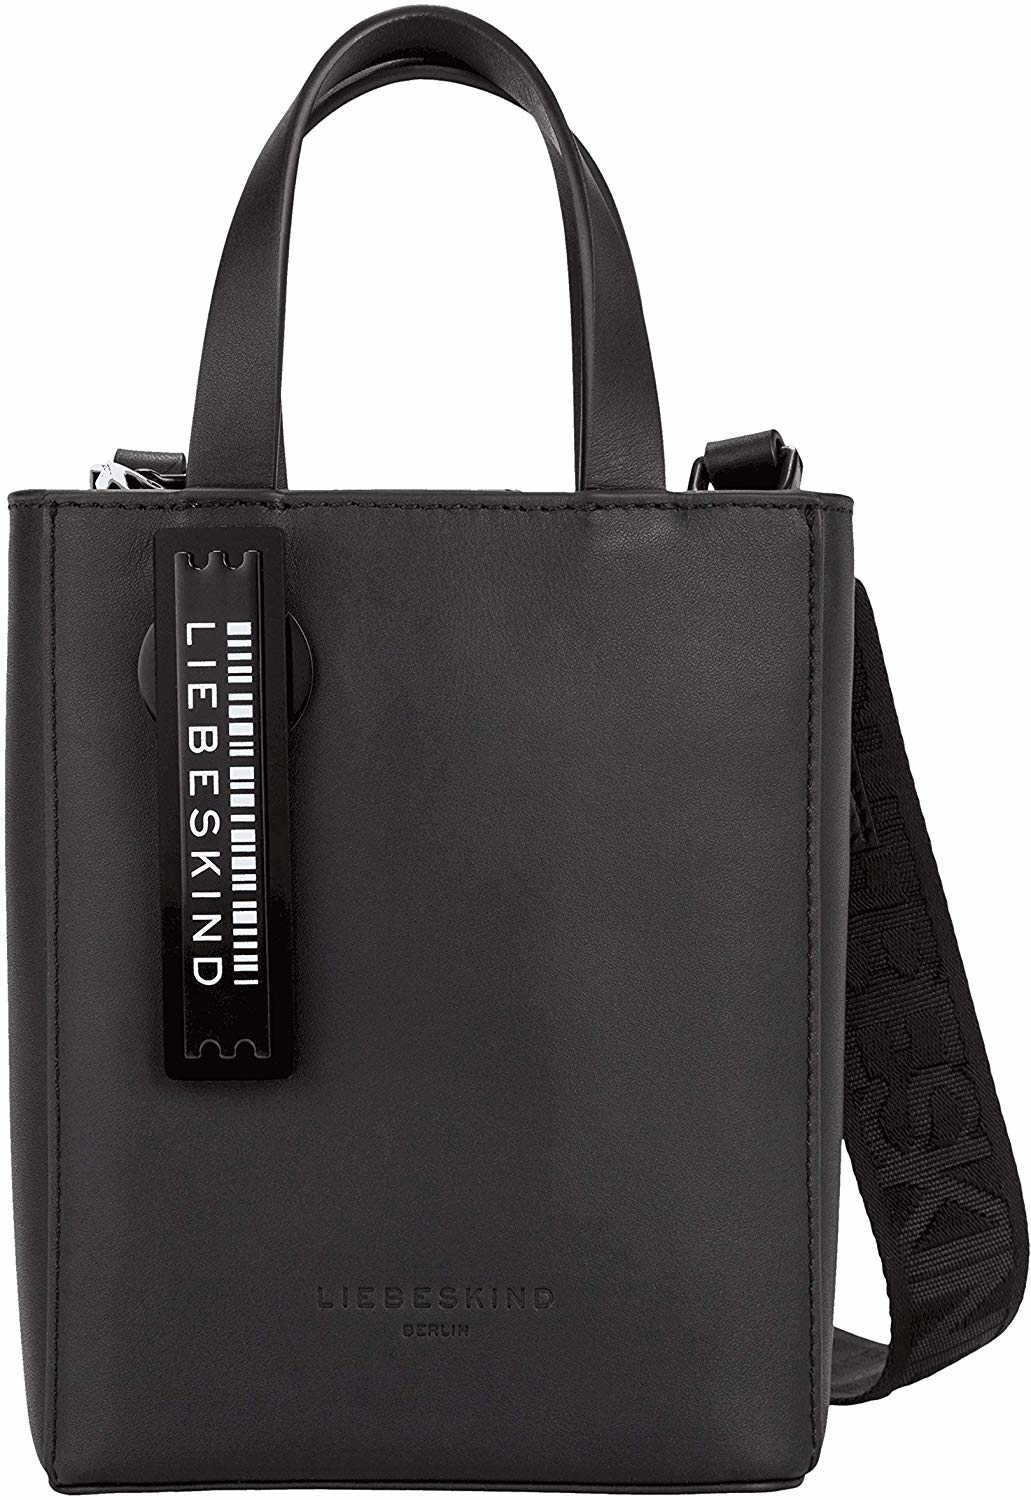 Liebeskind Berlin Paper Bag /Tote XSmall